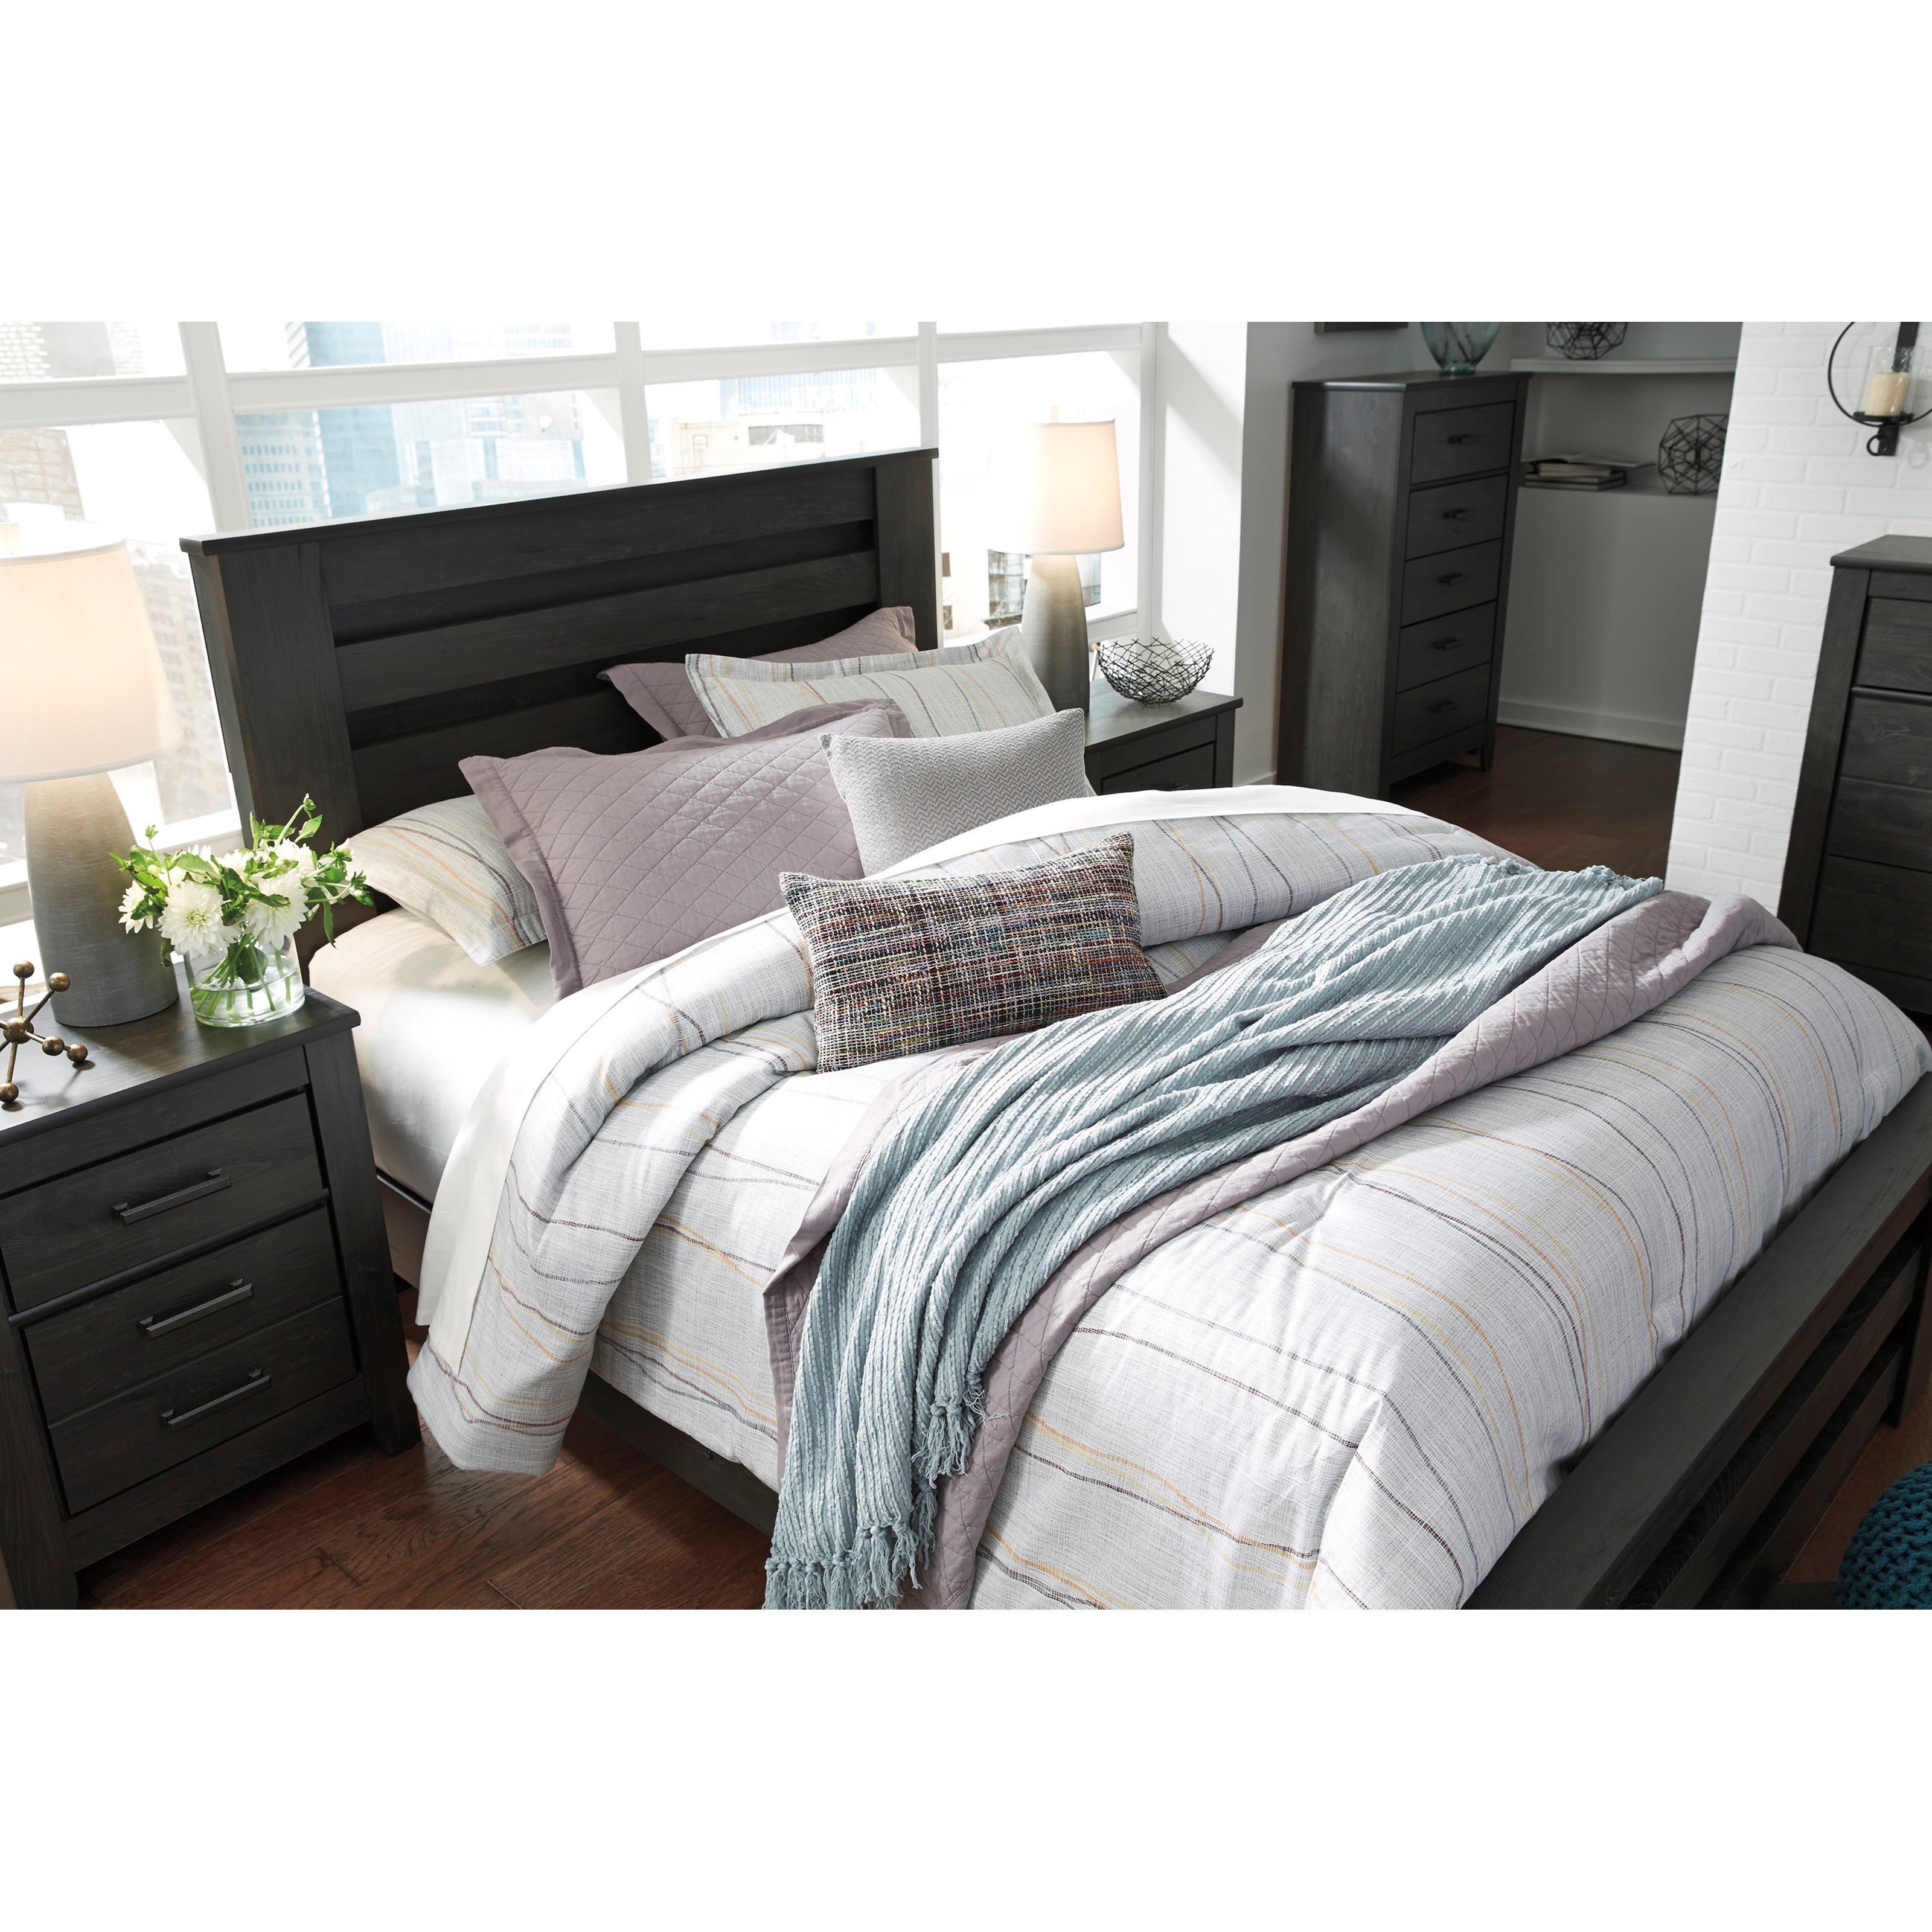 Signature Design By Ashley Brinxton Queen Poster Bed In